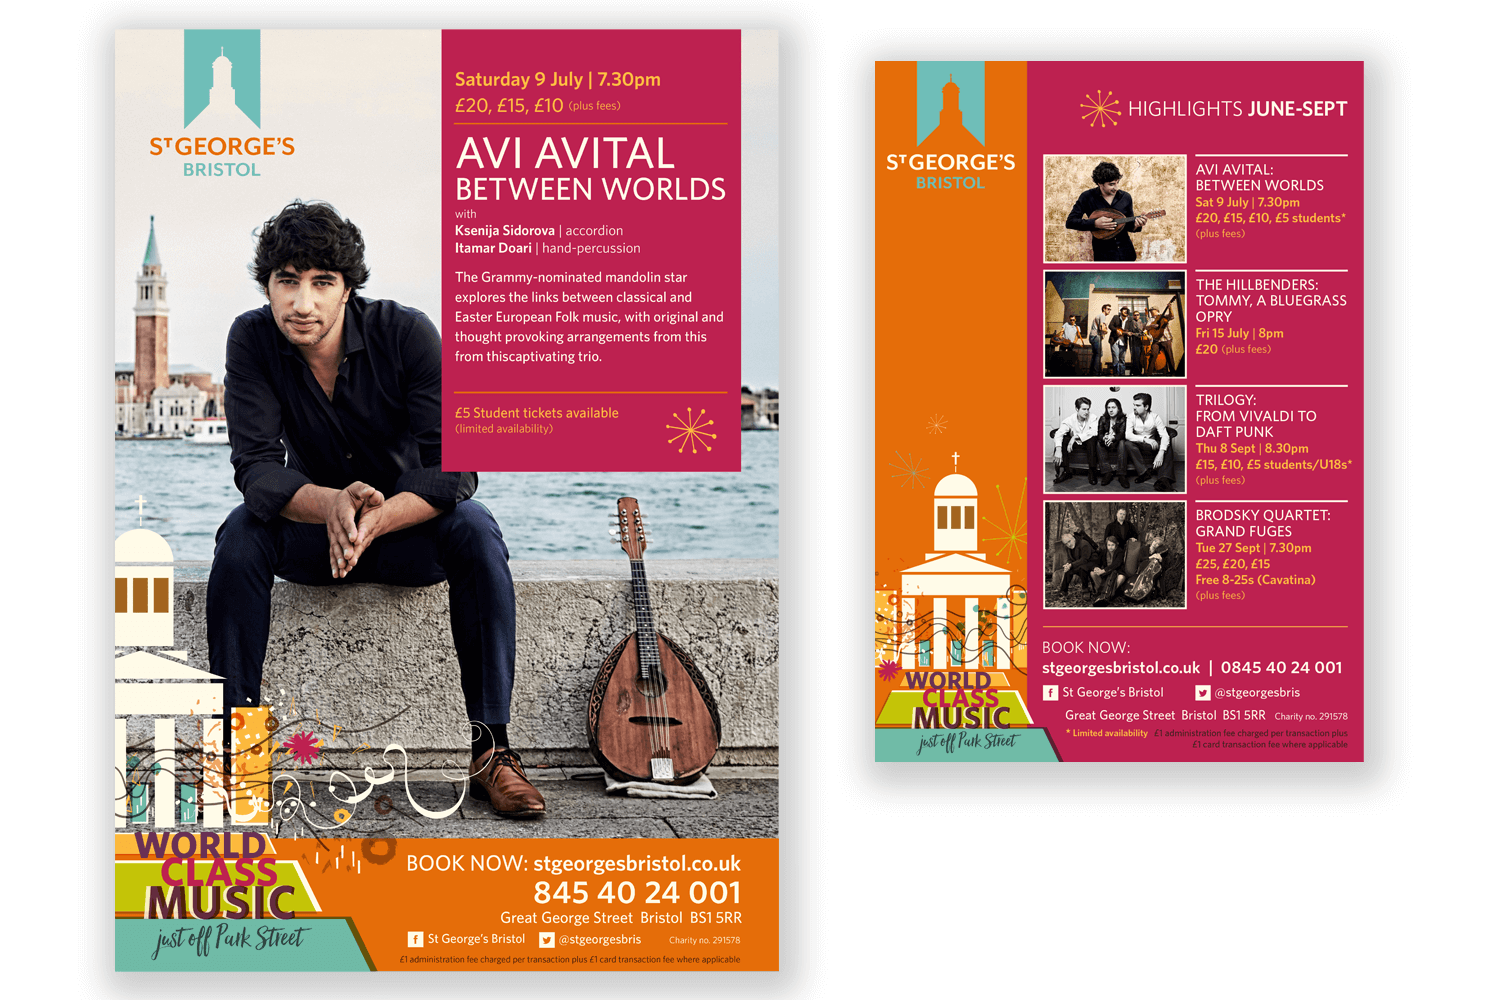 The identity was applied across all marketing materials. Above: Poster design and multi-event magazine advertisement